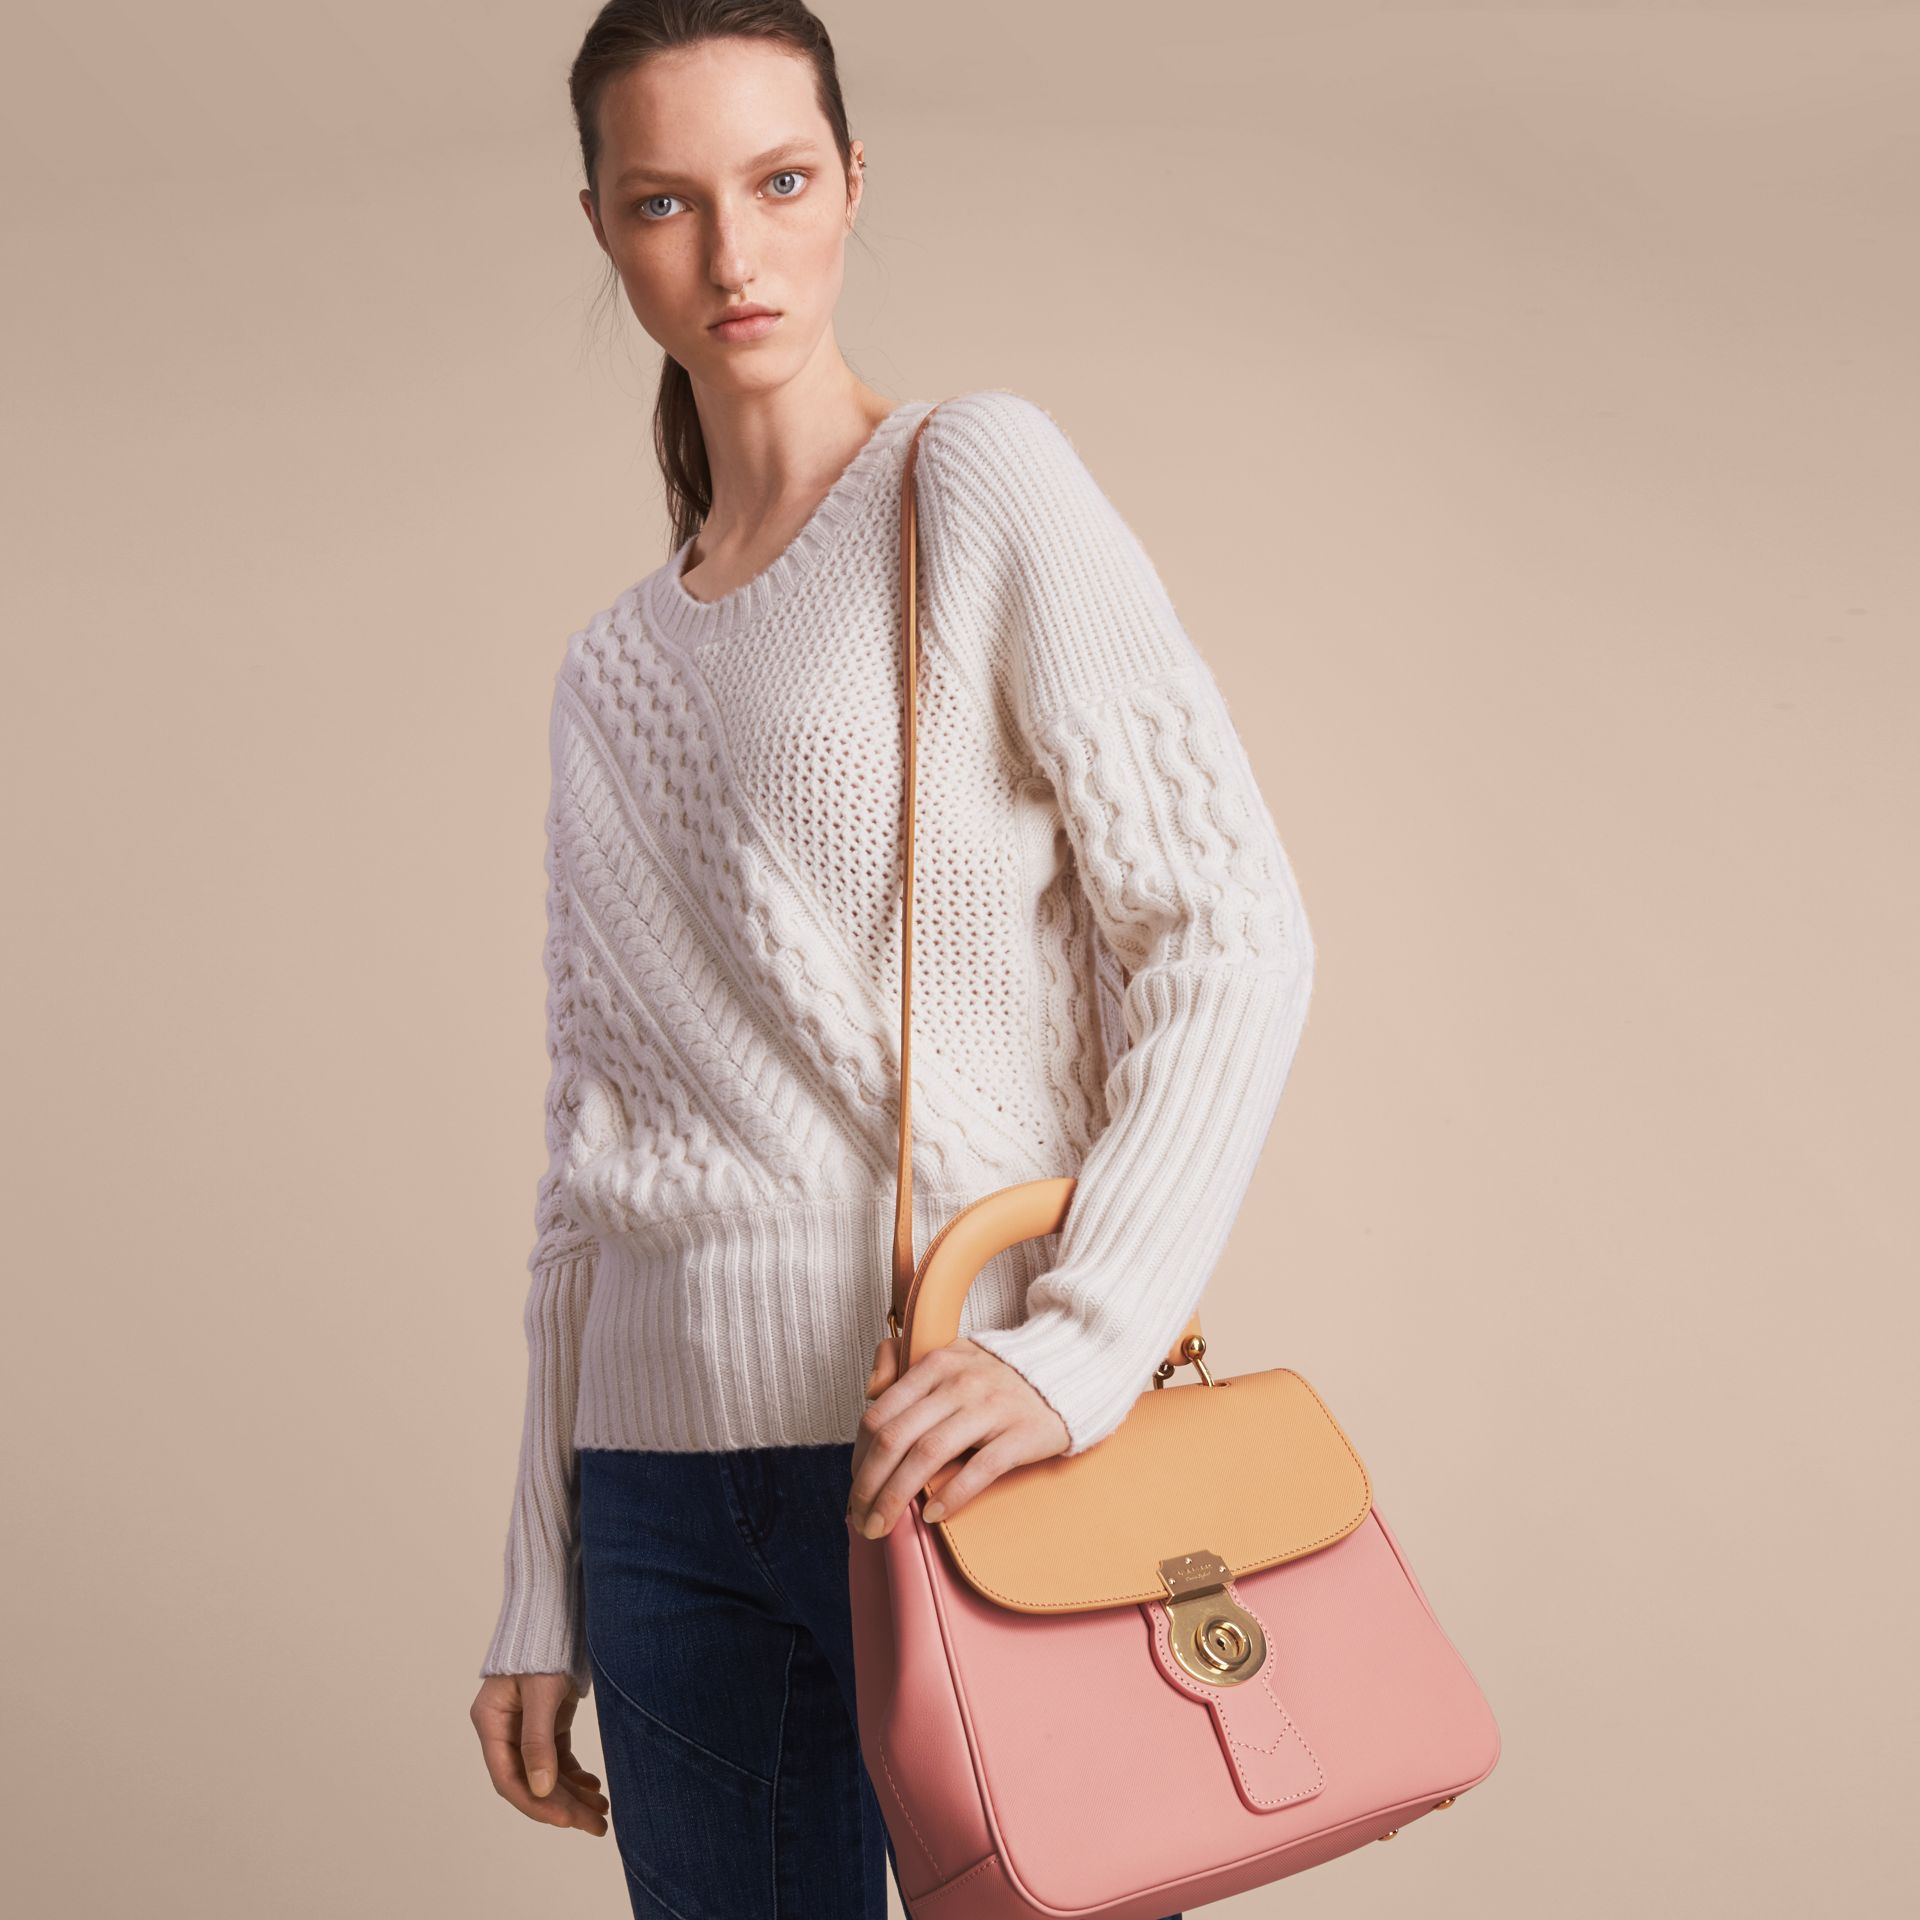 The Medium DK88 Top Handle Bag in Ash Rose/pale Clementine - Women | Burberry Australia - gallery image 7